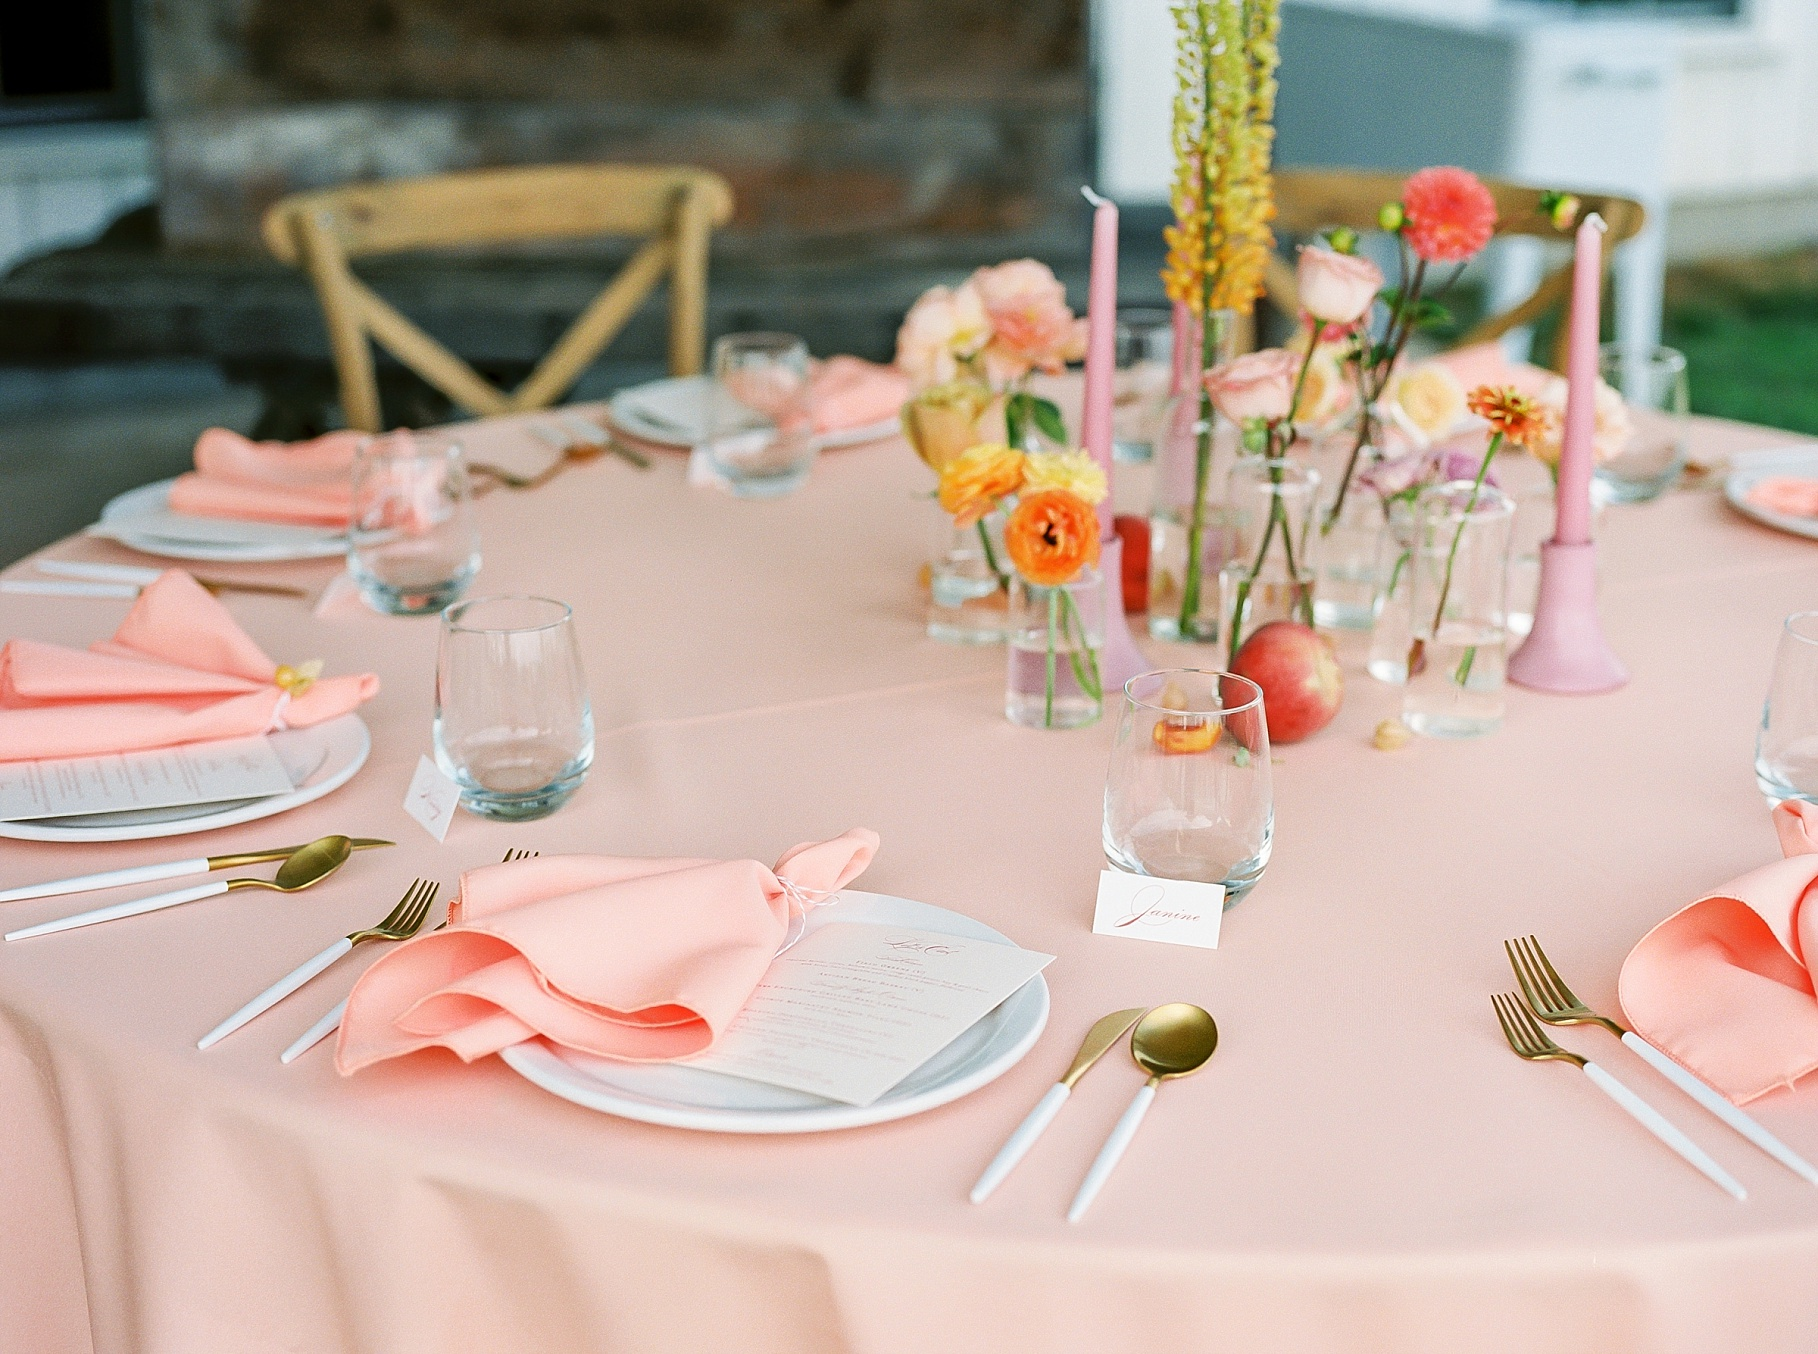 Late Summer Wedding With Pastel Toned Soiree at Blue Bell Farm by Kelsi Kliethermes Photography Best Columbia Missouri Wedding Photographer_0006.jpg